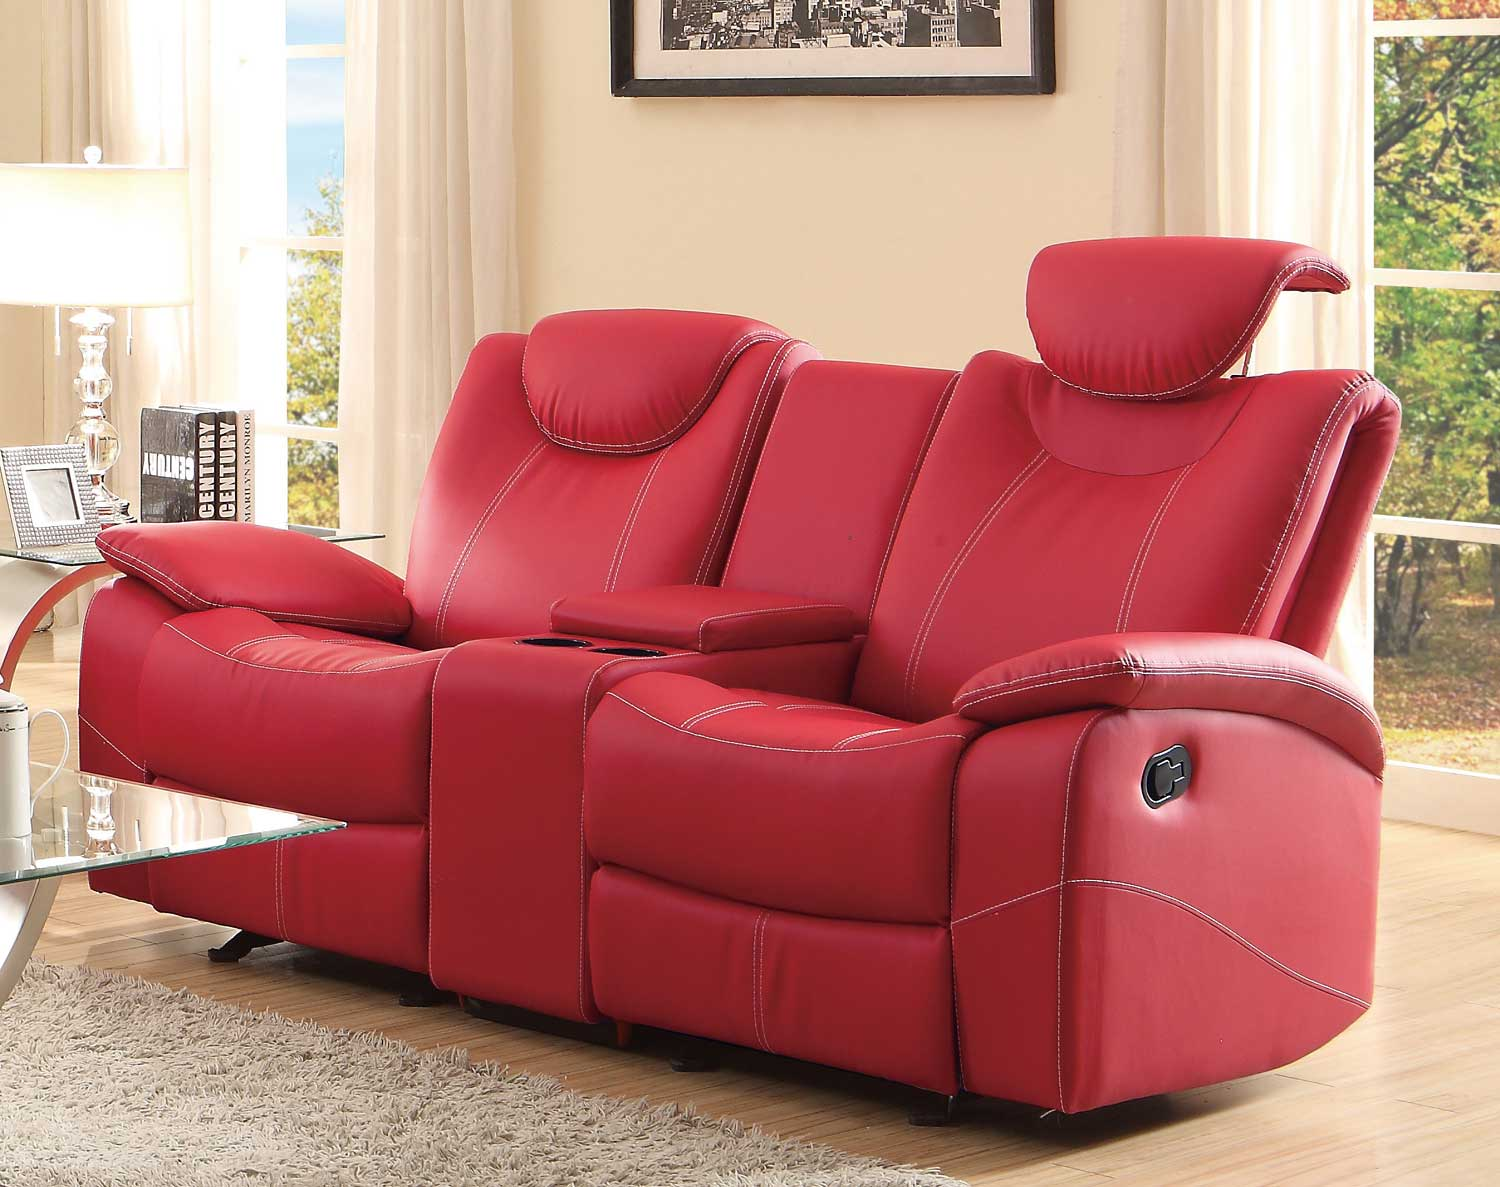 Homelegance Talbot Double Glider Reclining Love Seat with Center Console - Red Bonded Leather